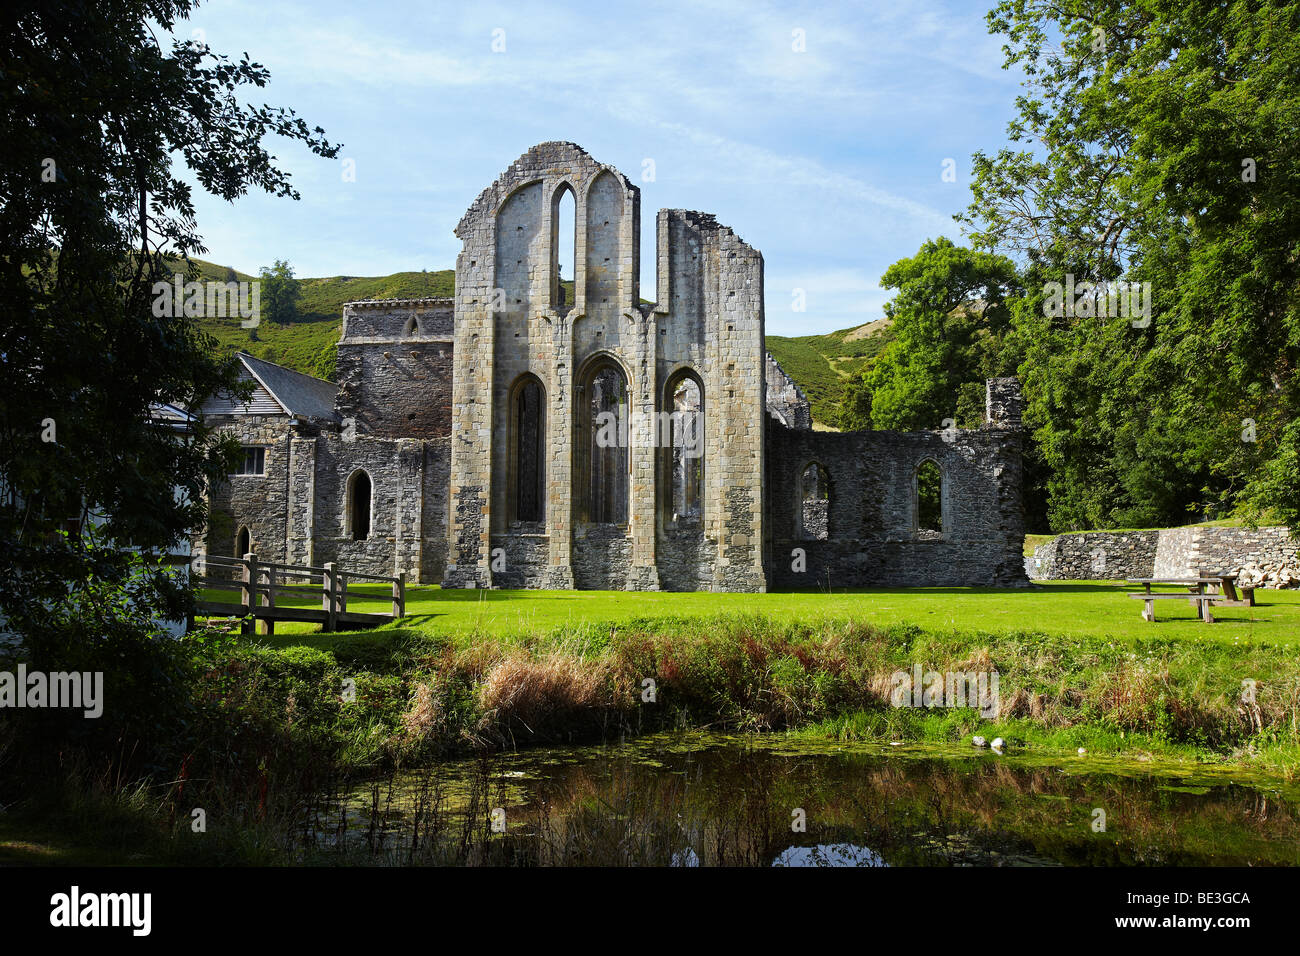 Valle Crucis Abbey, Llangollen, Wales, UK Stock Photo